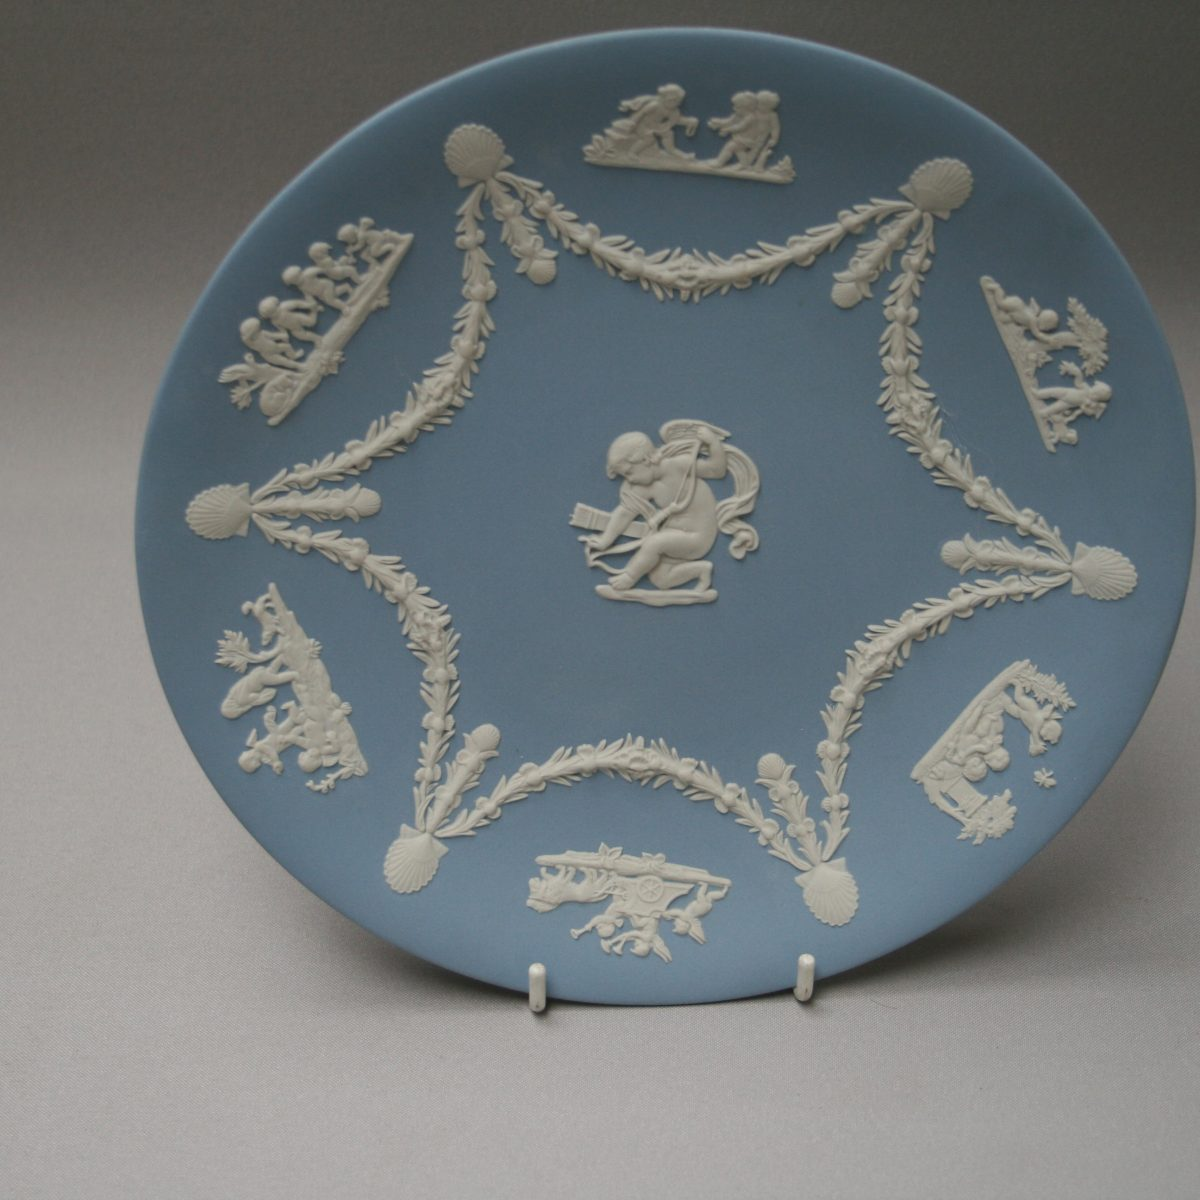 A large Pale blue Jasperware plate by Wedgwood/williamsantiques